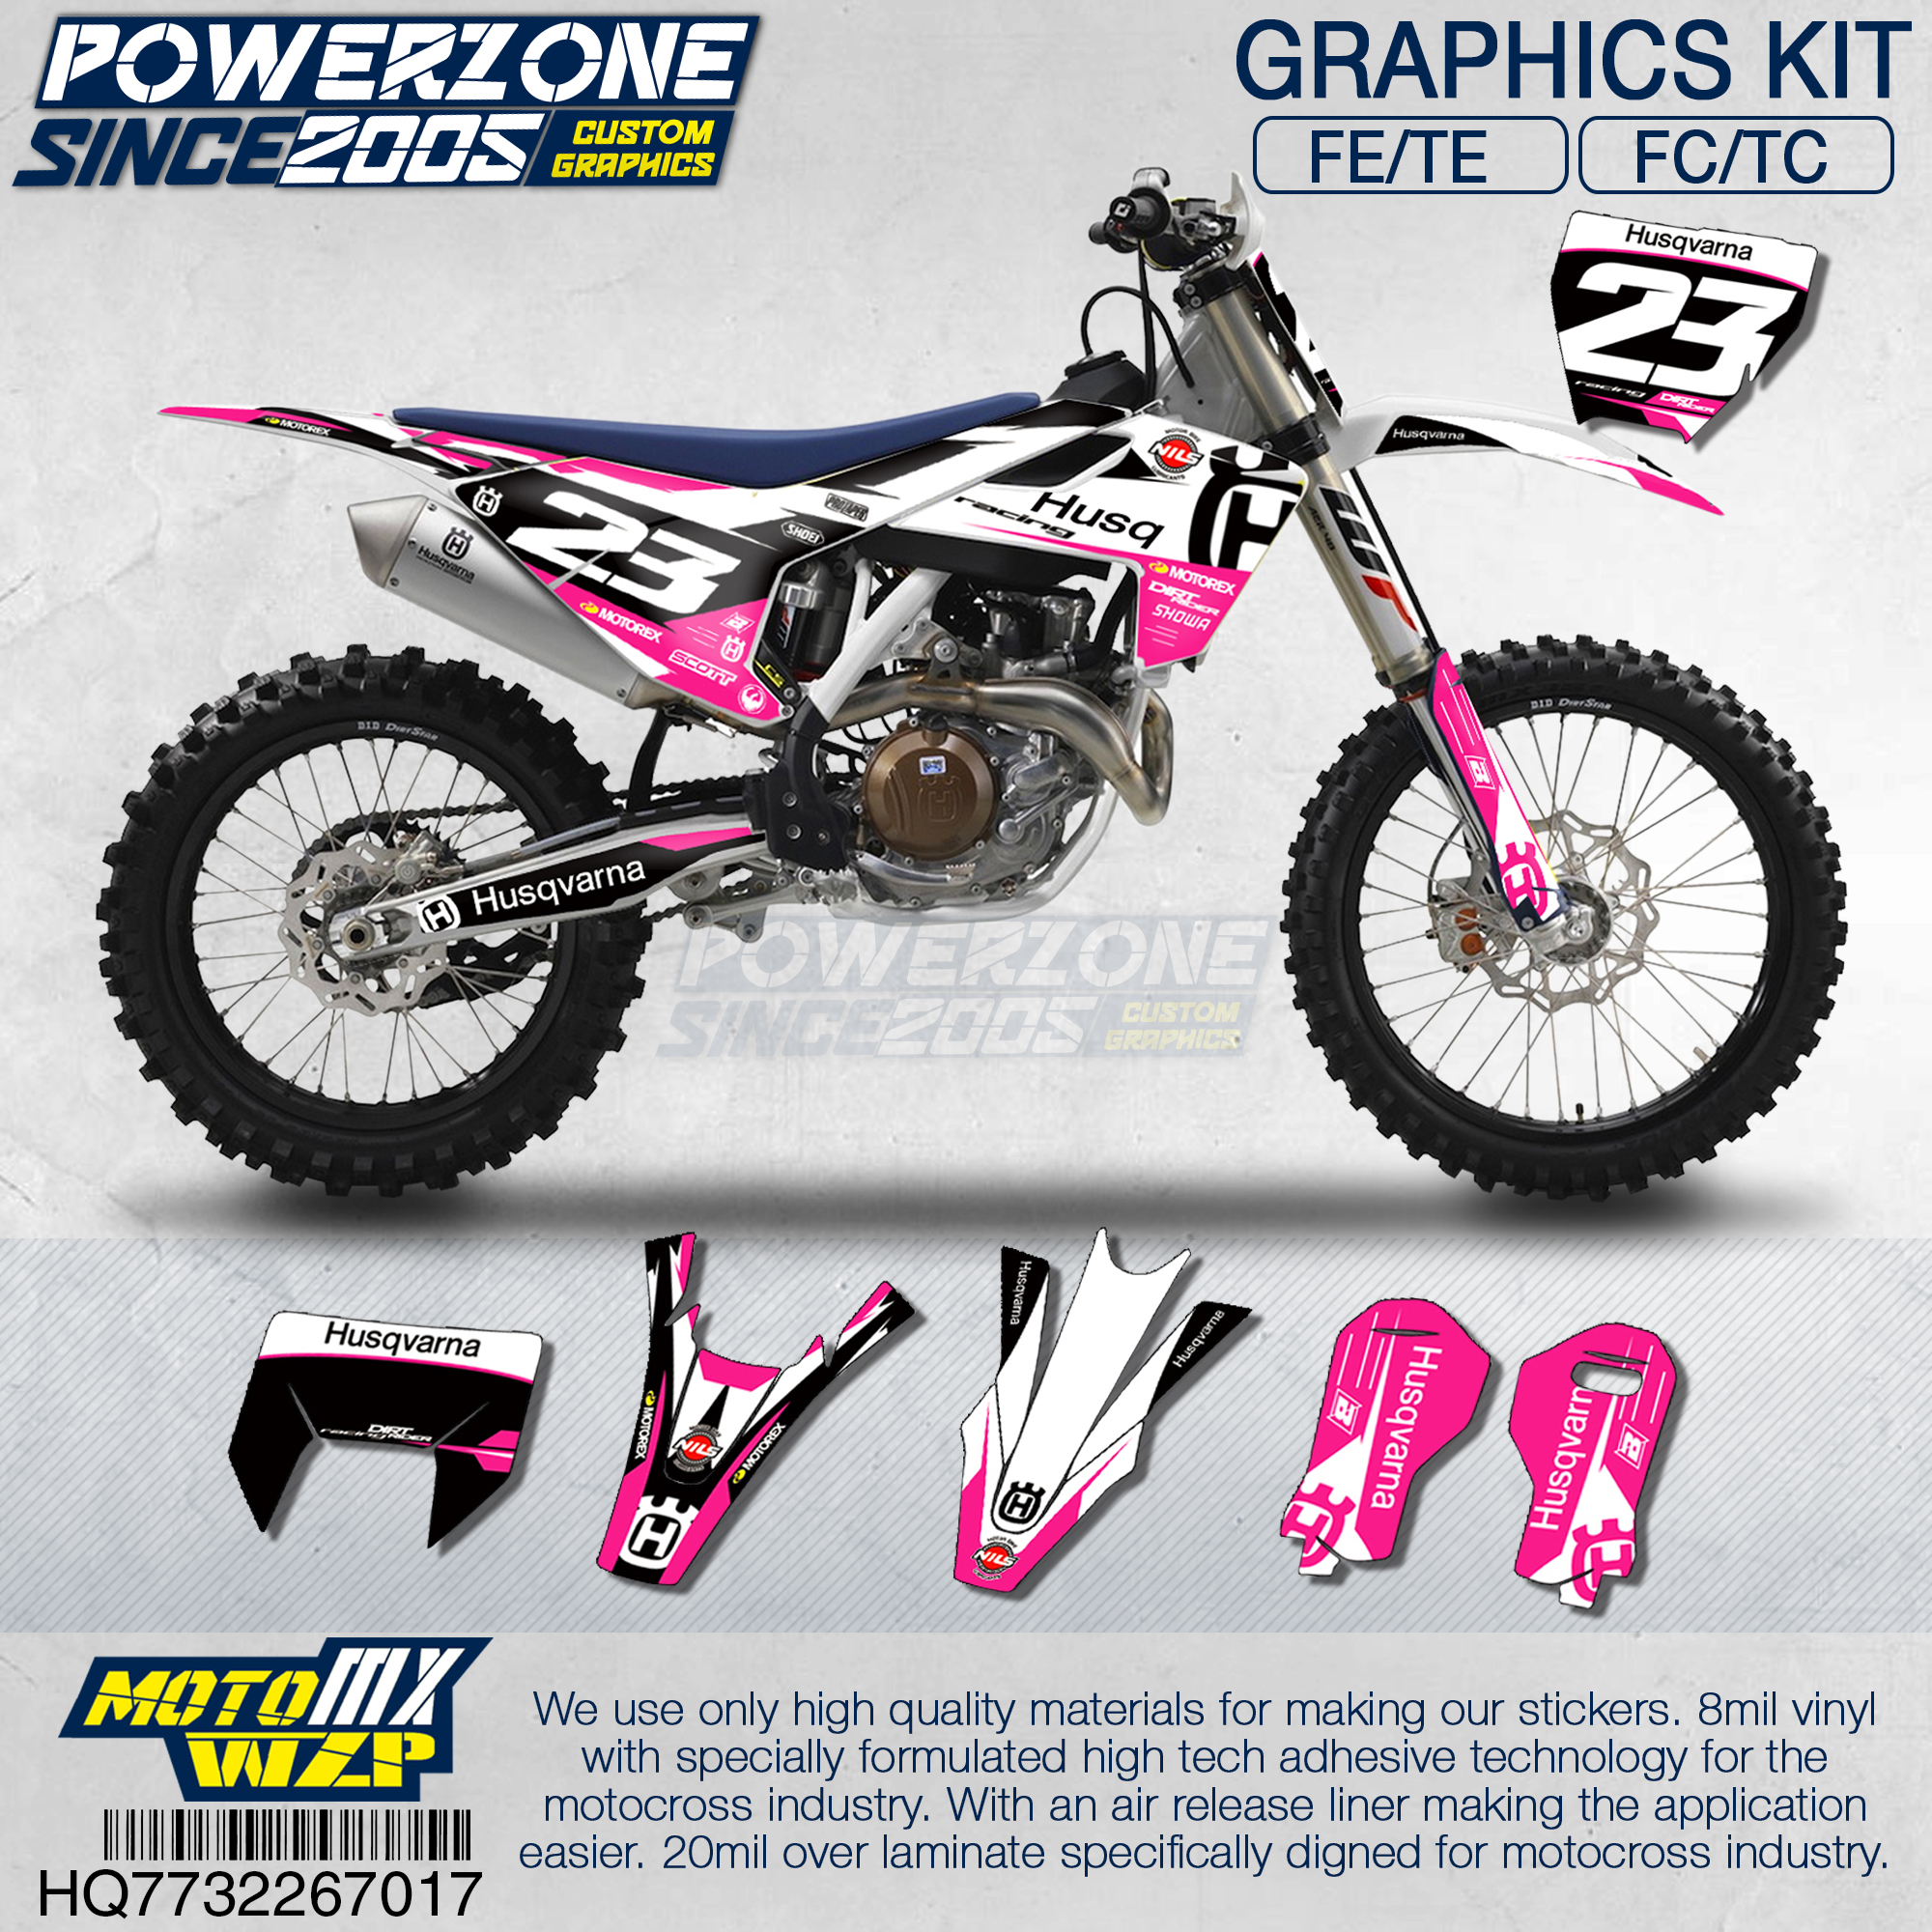 Customized Team Graphics Backgrounds Decals 3M Custom Stickers Pink Kit For Husqvarna 2014 17 18 FE